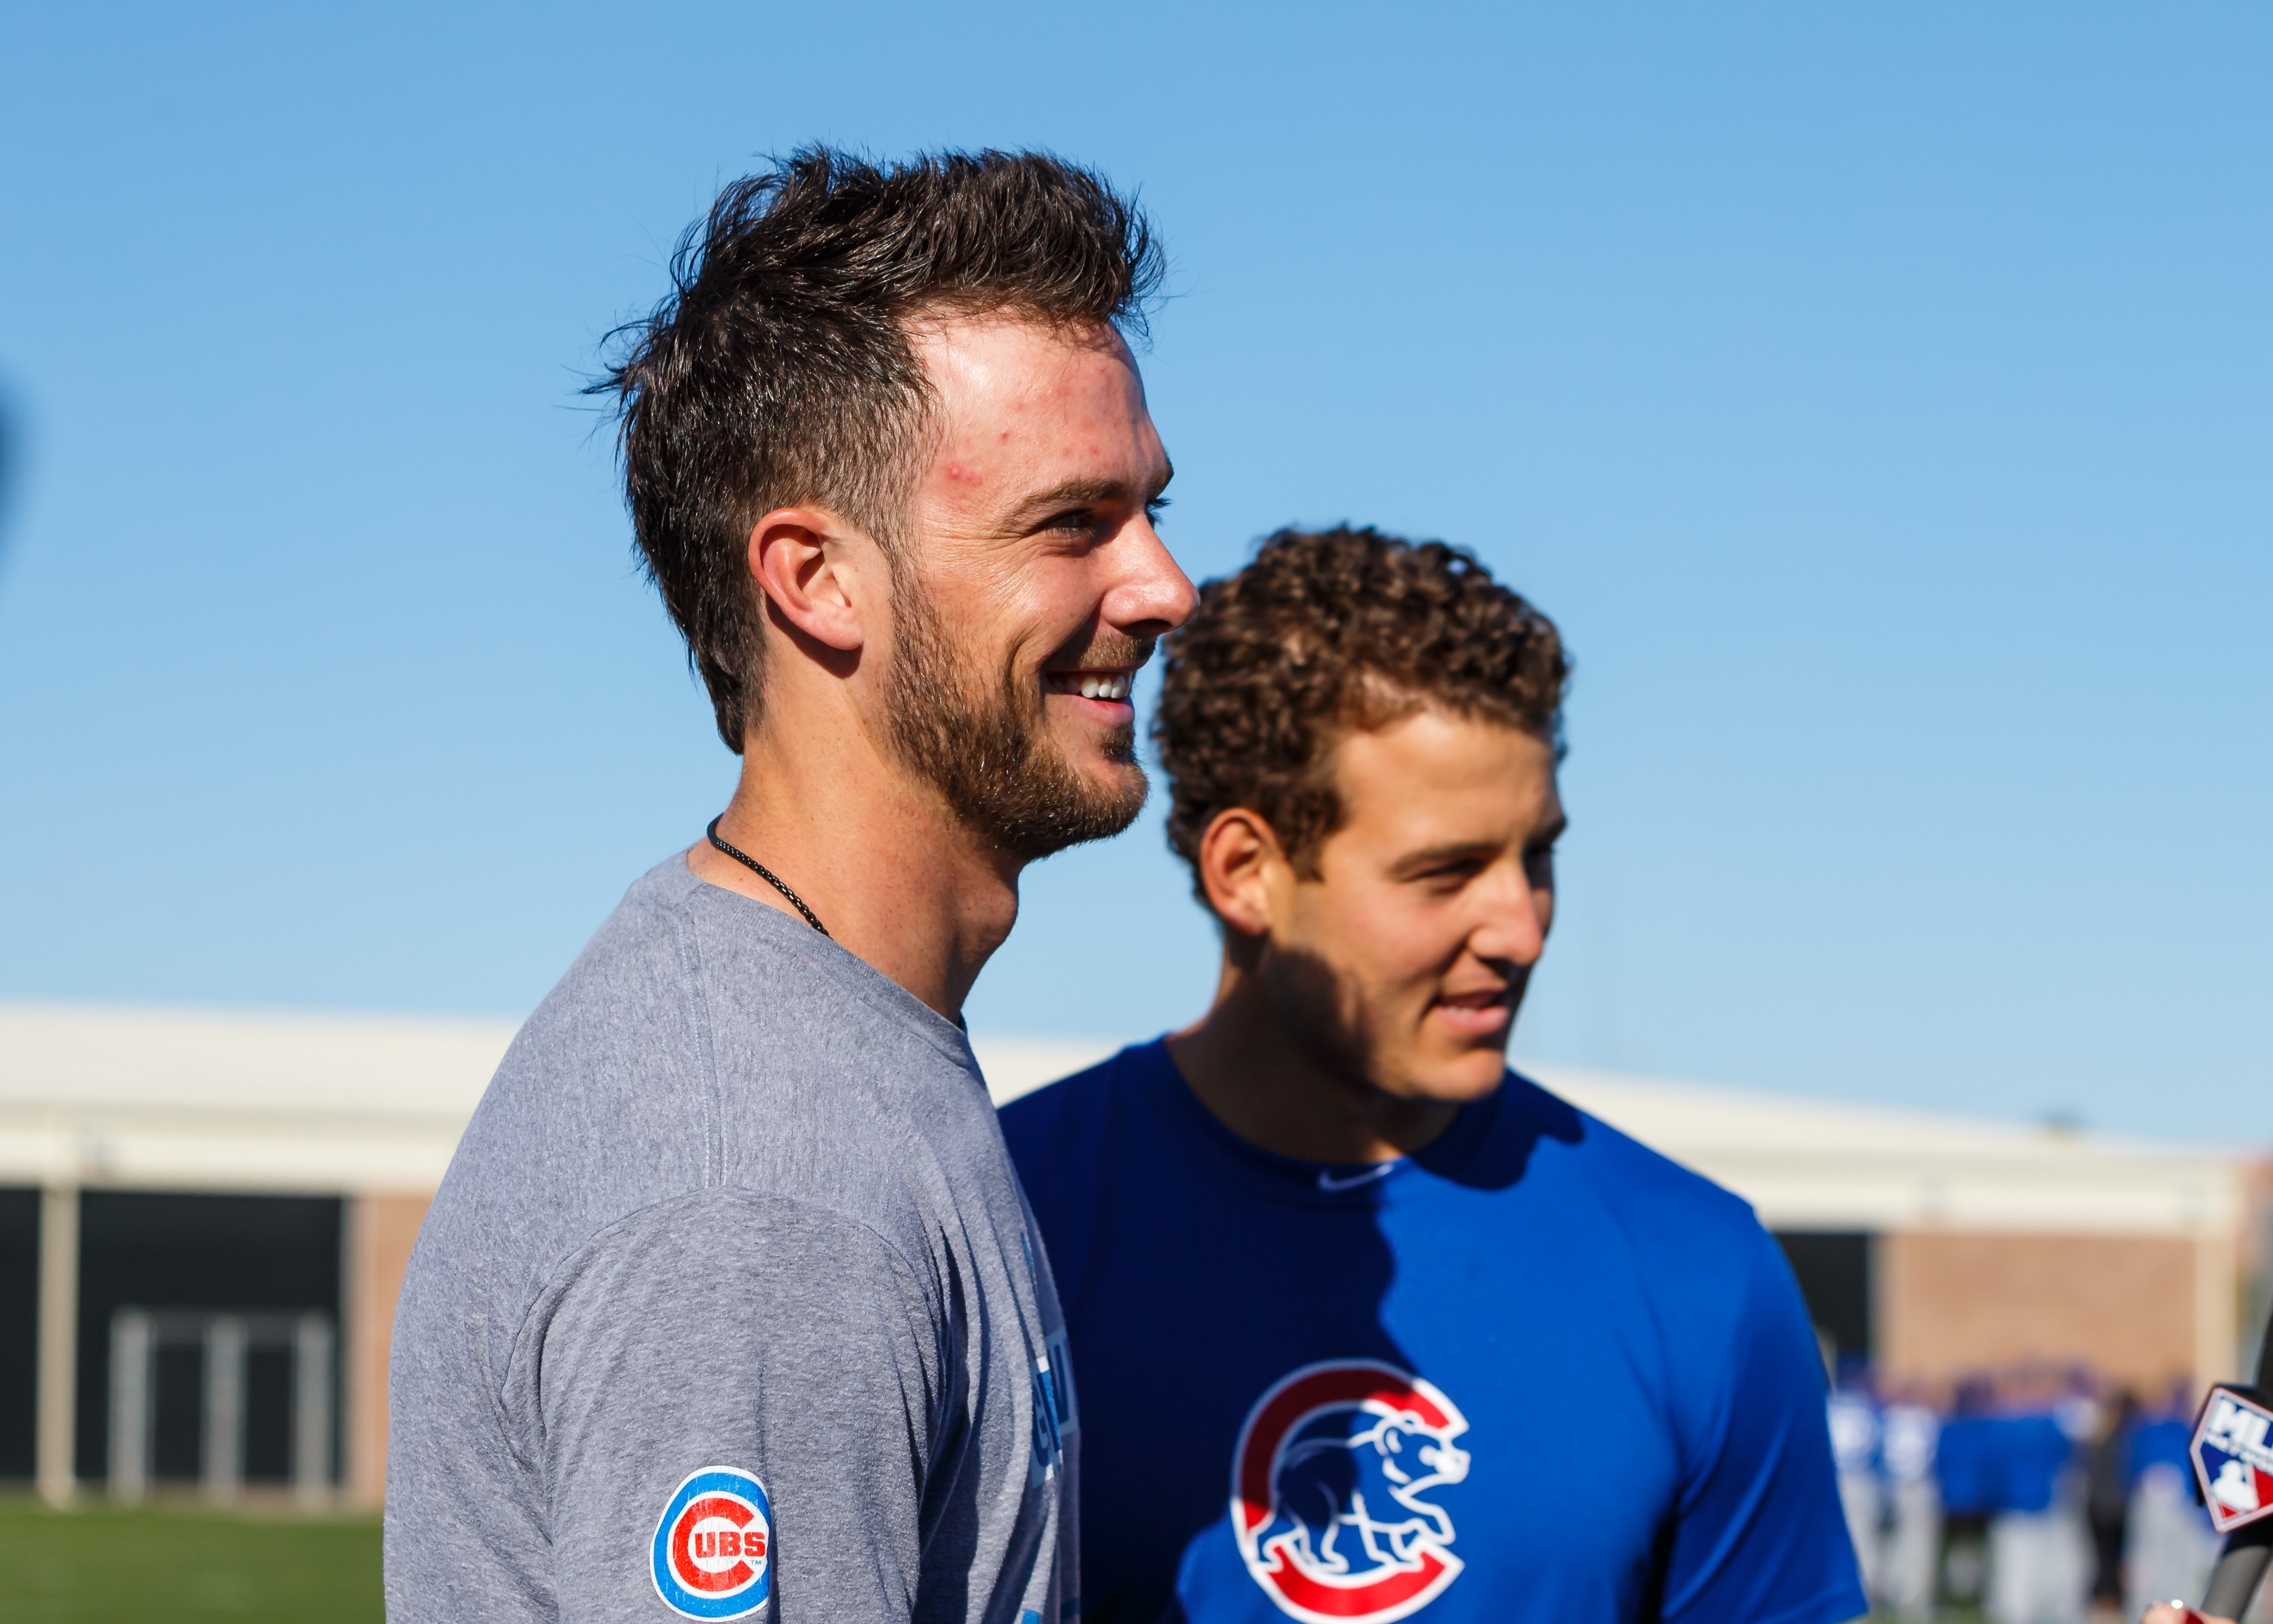 9879291-mlb-chicago-cubs-workouts